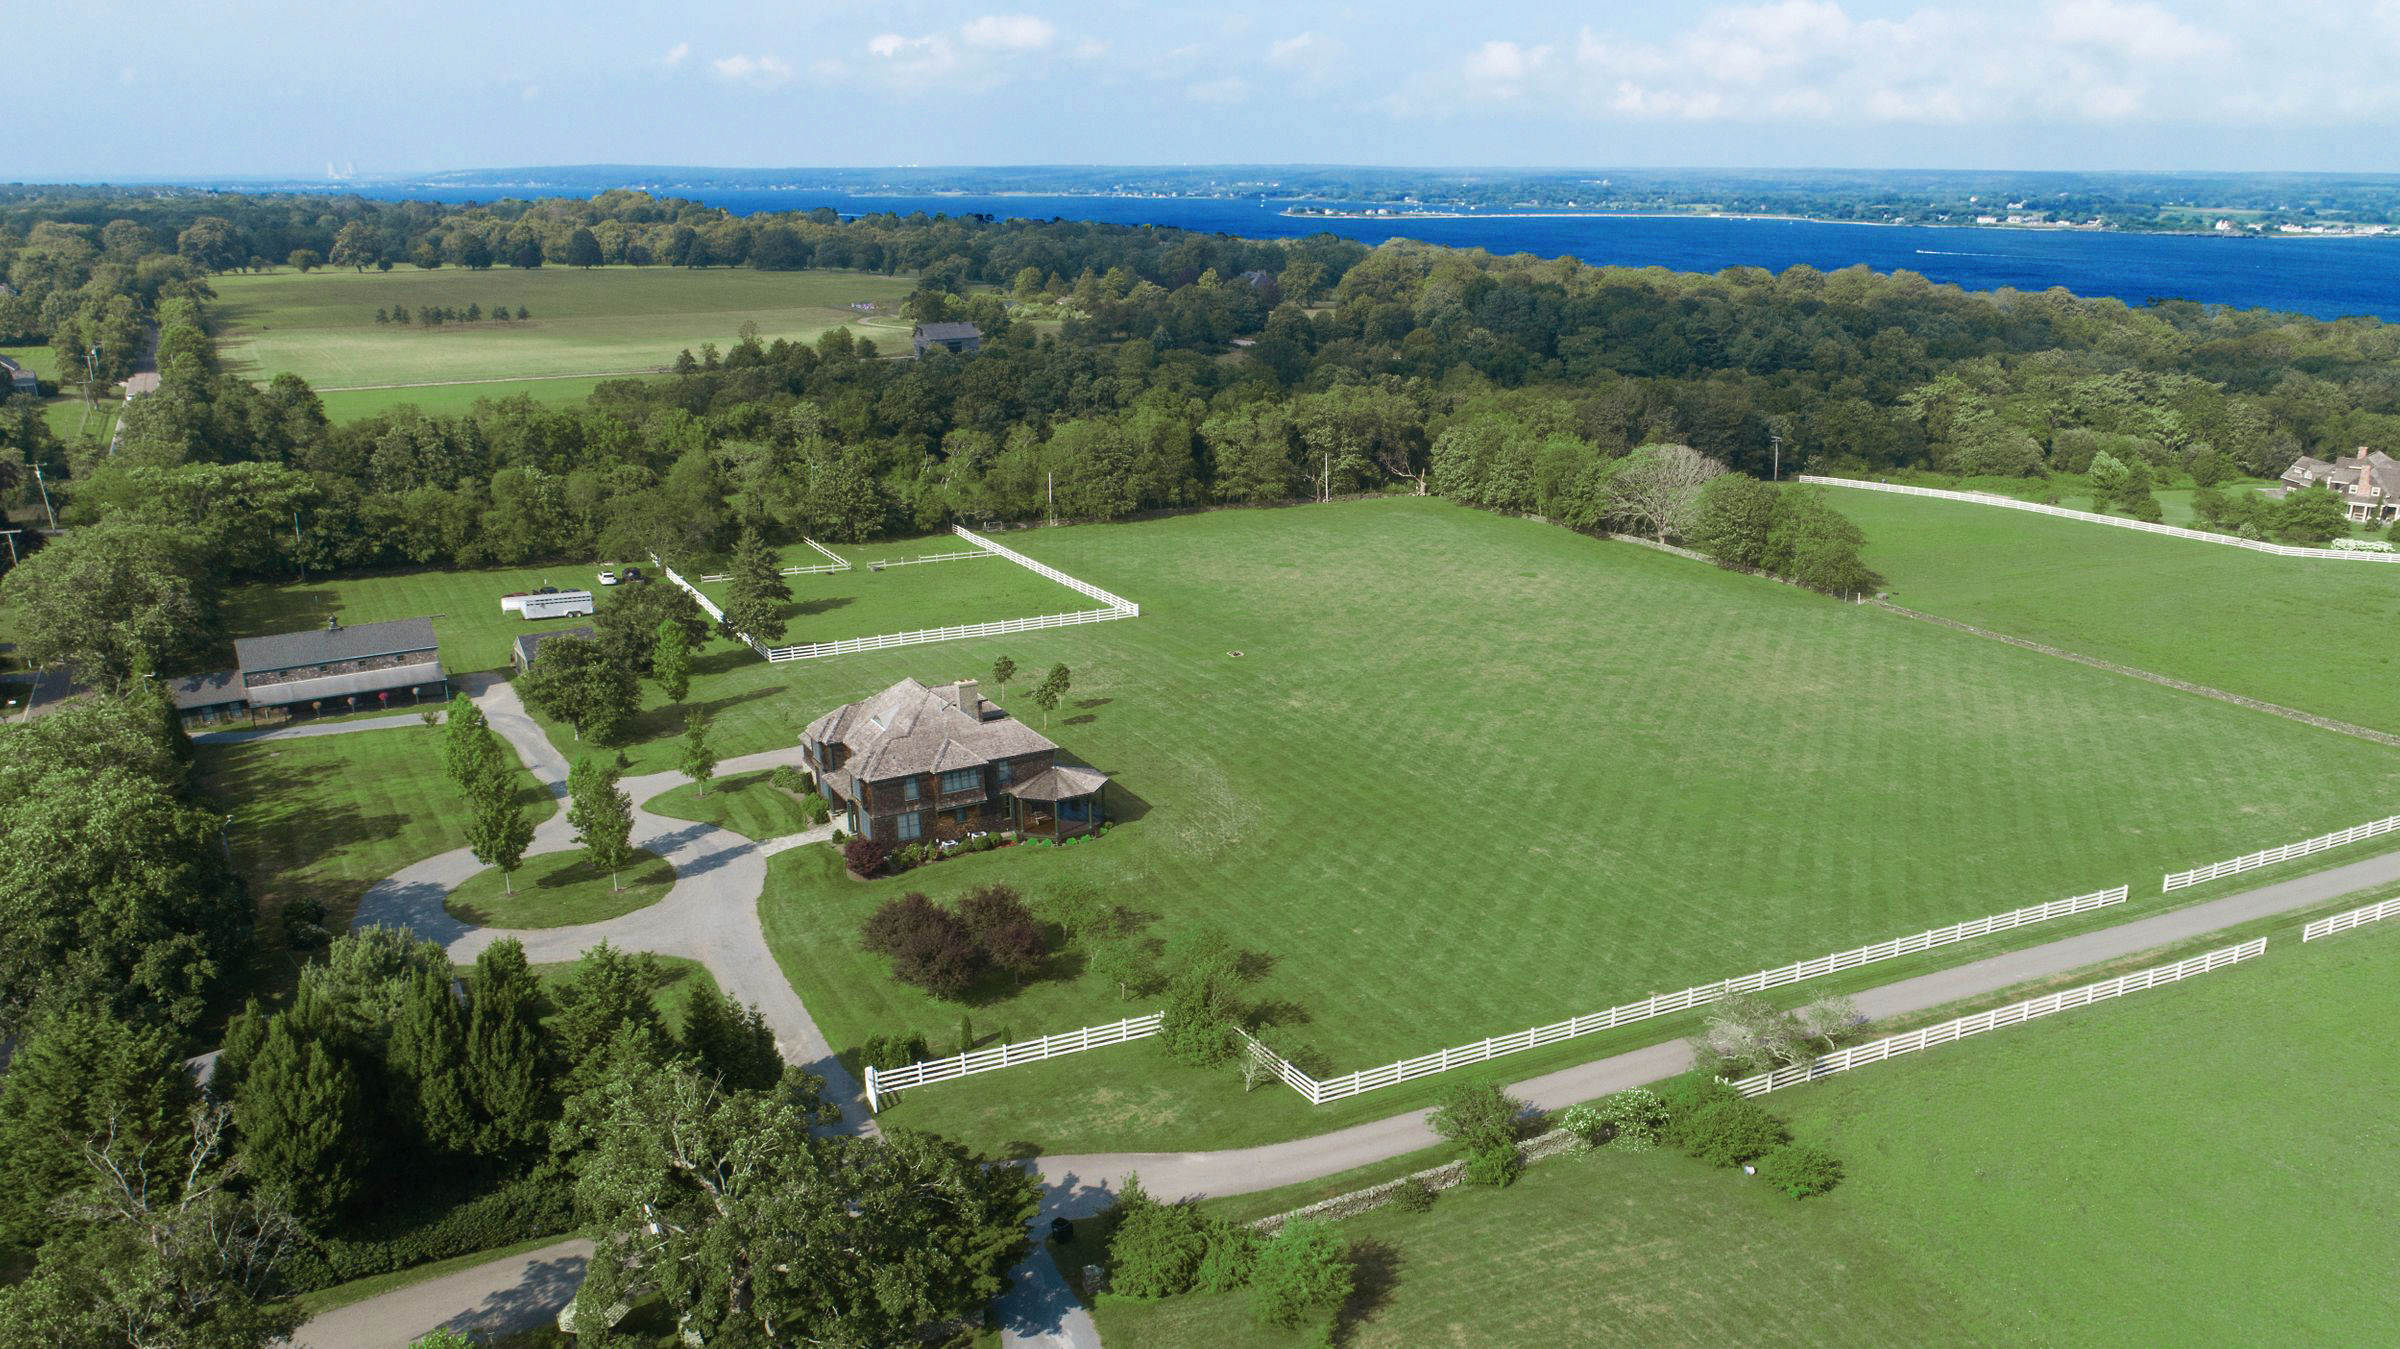 'FARMLANDS' ESTATE ON 11.63 ACRES SELLS FOR $2,012,750, MARKING ONE OF  THE TOP TEN SALES IN PORTSMOUTH IN THE LAST FIVE YEARS*